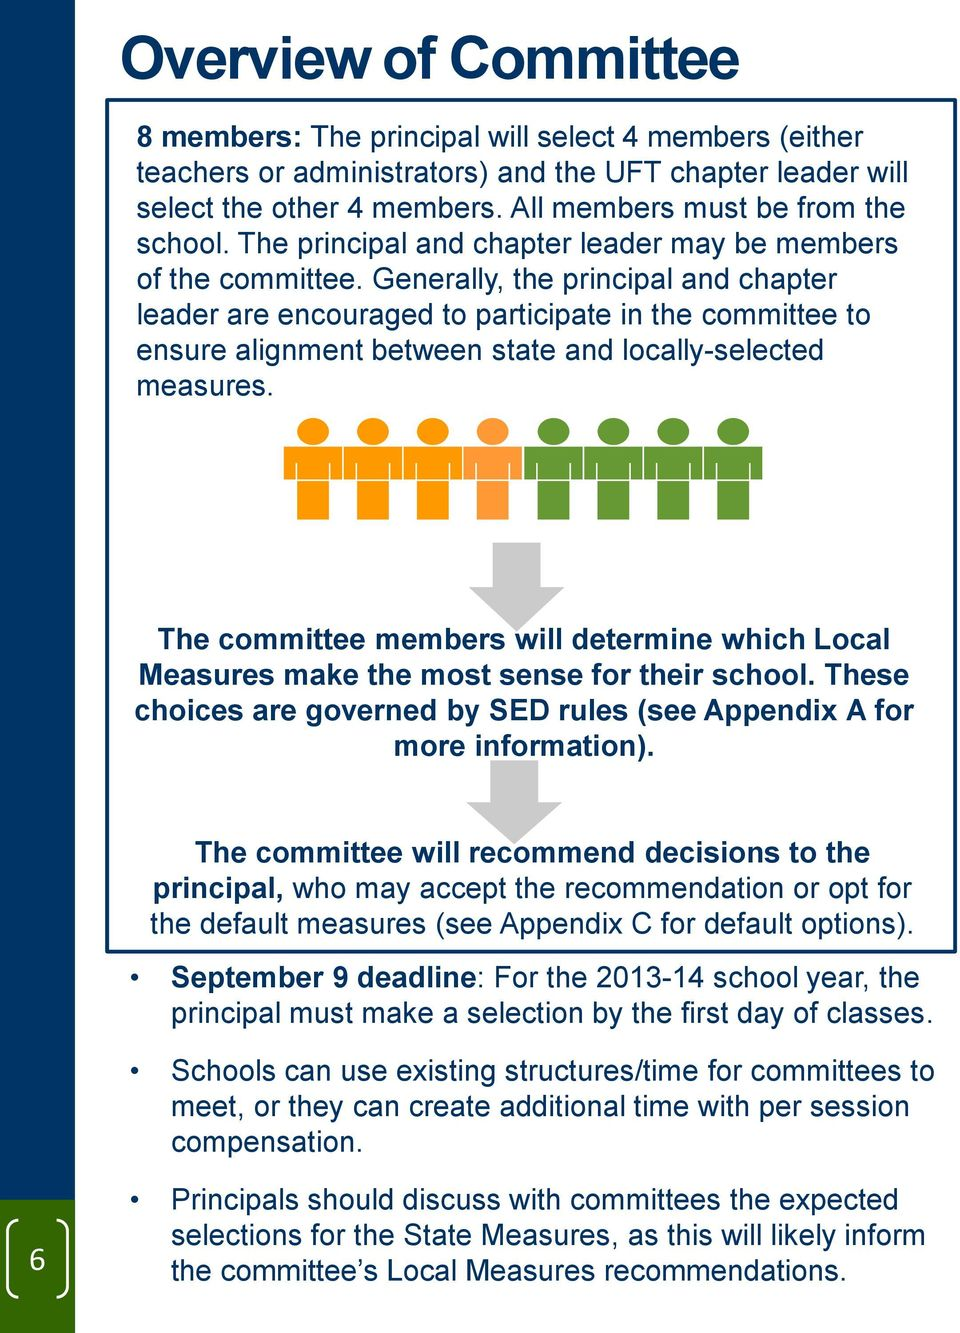 Generally, the principal and chapter leader are encouraged to participate in the committee to ensure alignment between state and locally-selected measures.